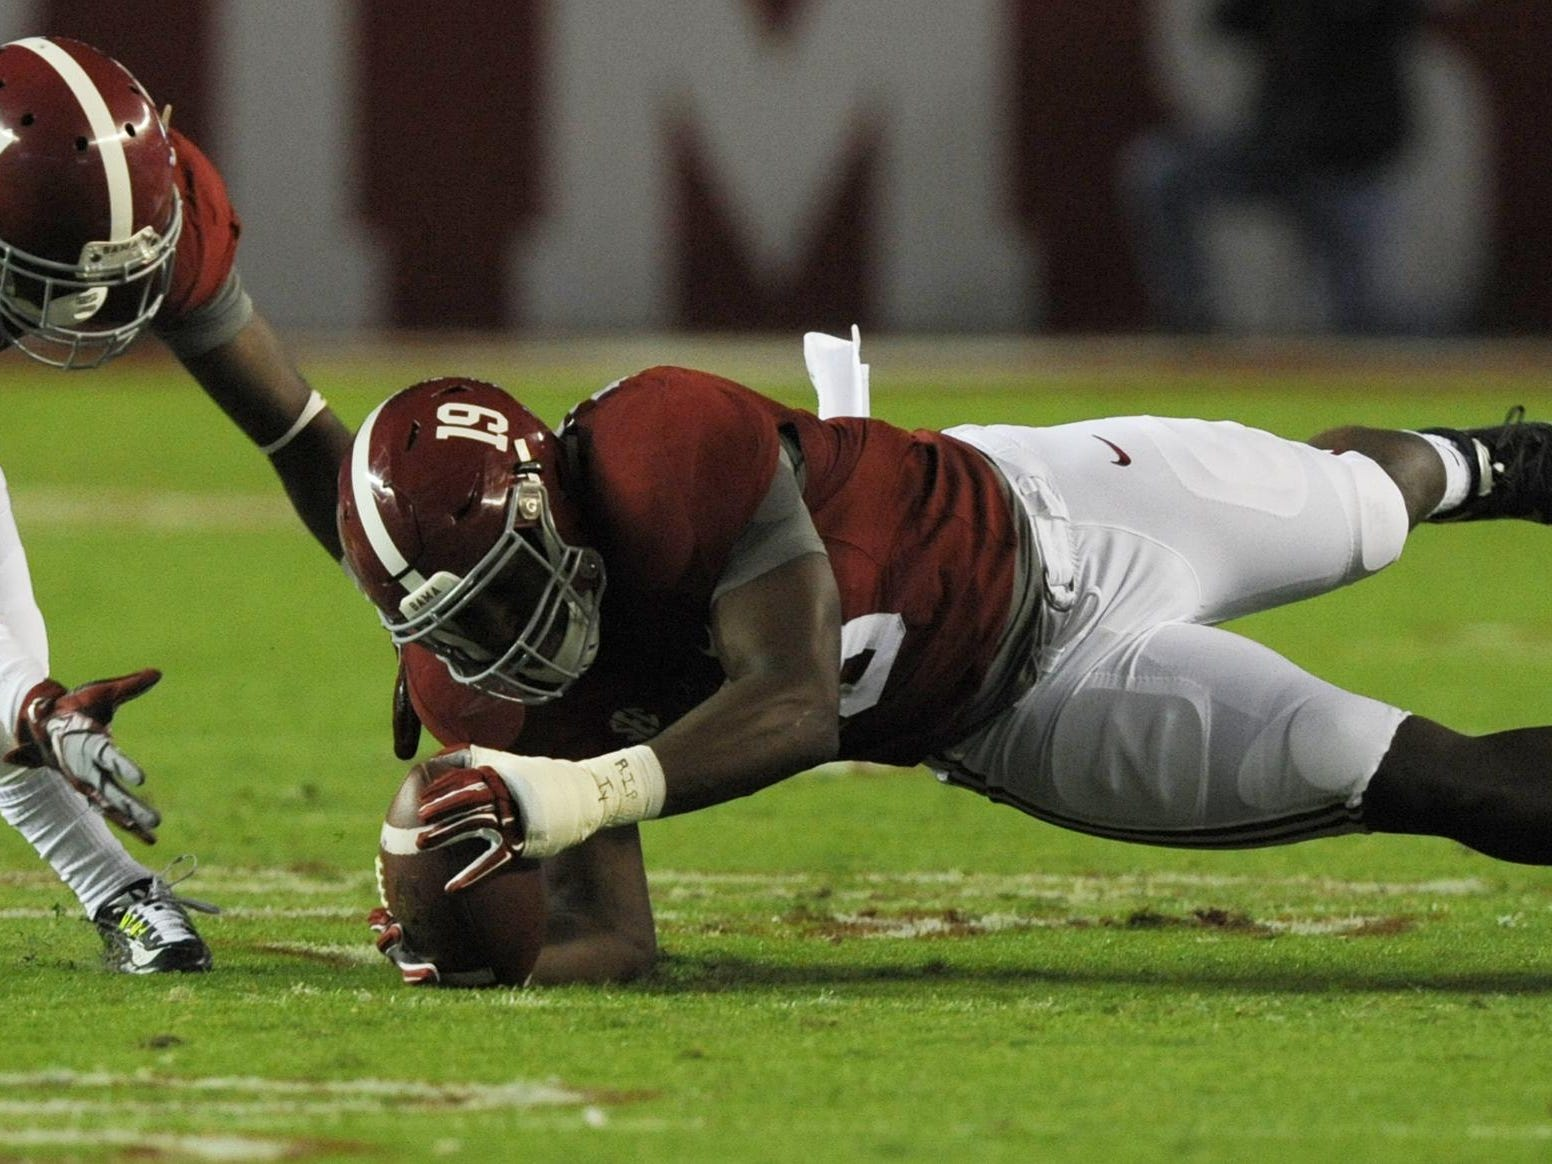 Alabama linebacker Reggie Ragland dives on a fumble early in the first quarter against Auburn in the Iron Bowl at Bryant-Denny Stadium in Tuscaloosa last year.